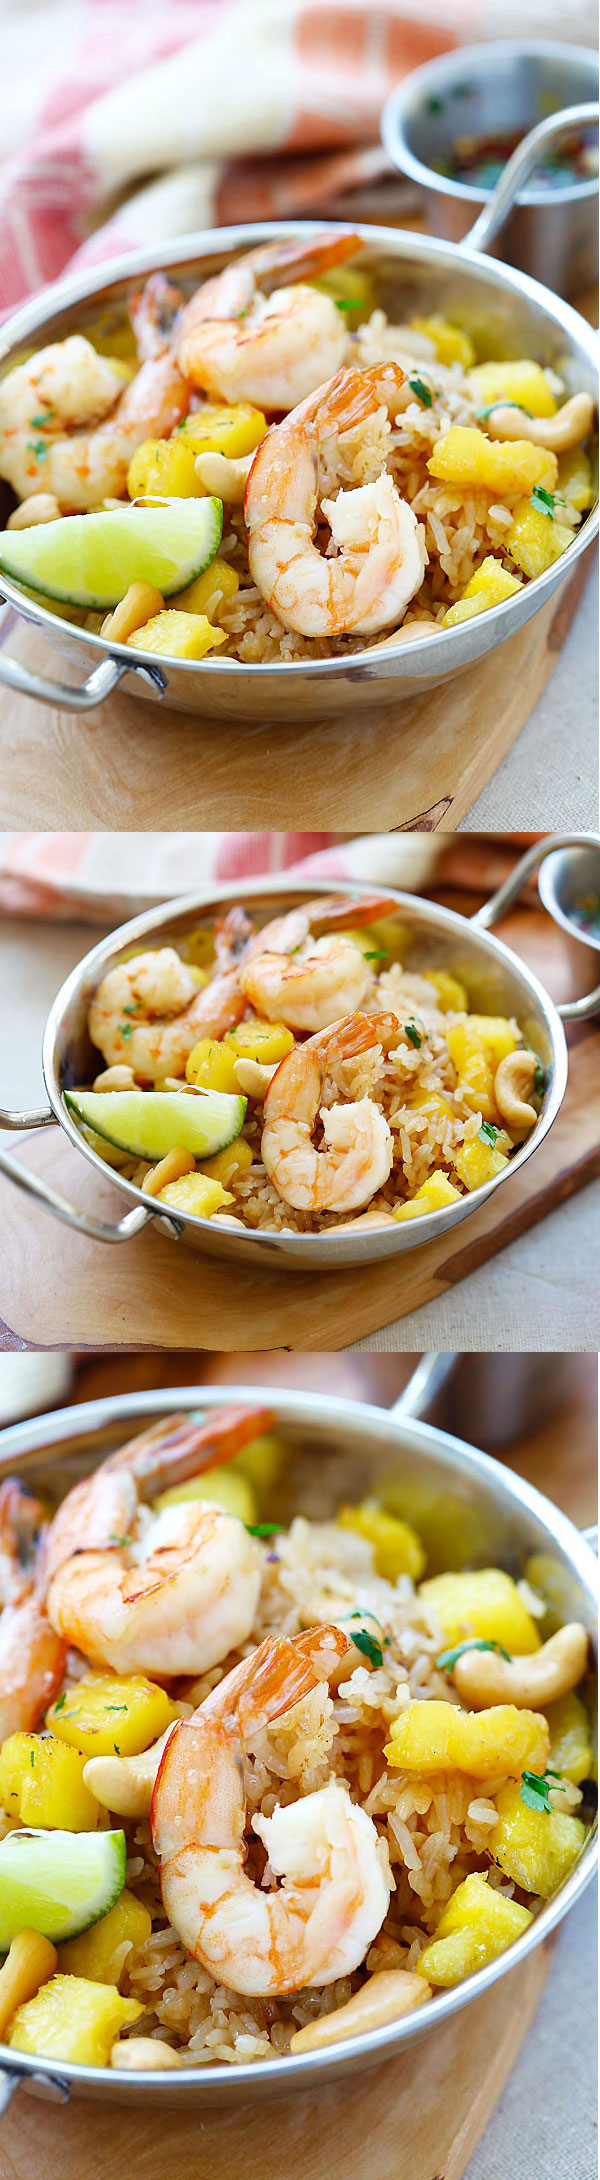 Thai Pineapple fried rice - amazing fried rice recipe with pineapple, shrimp and cashew nuts. Easy recipe that takes only 20 mins   rasamalaysia.com